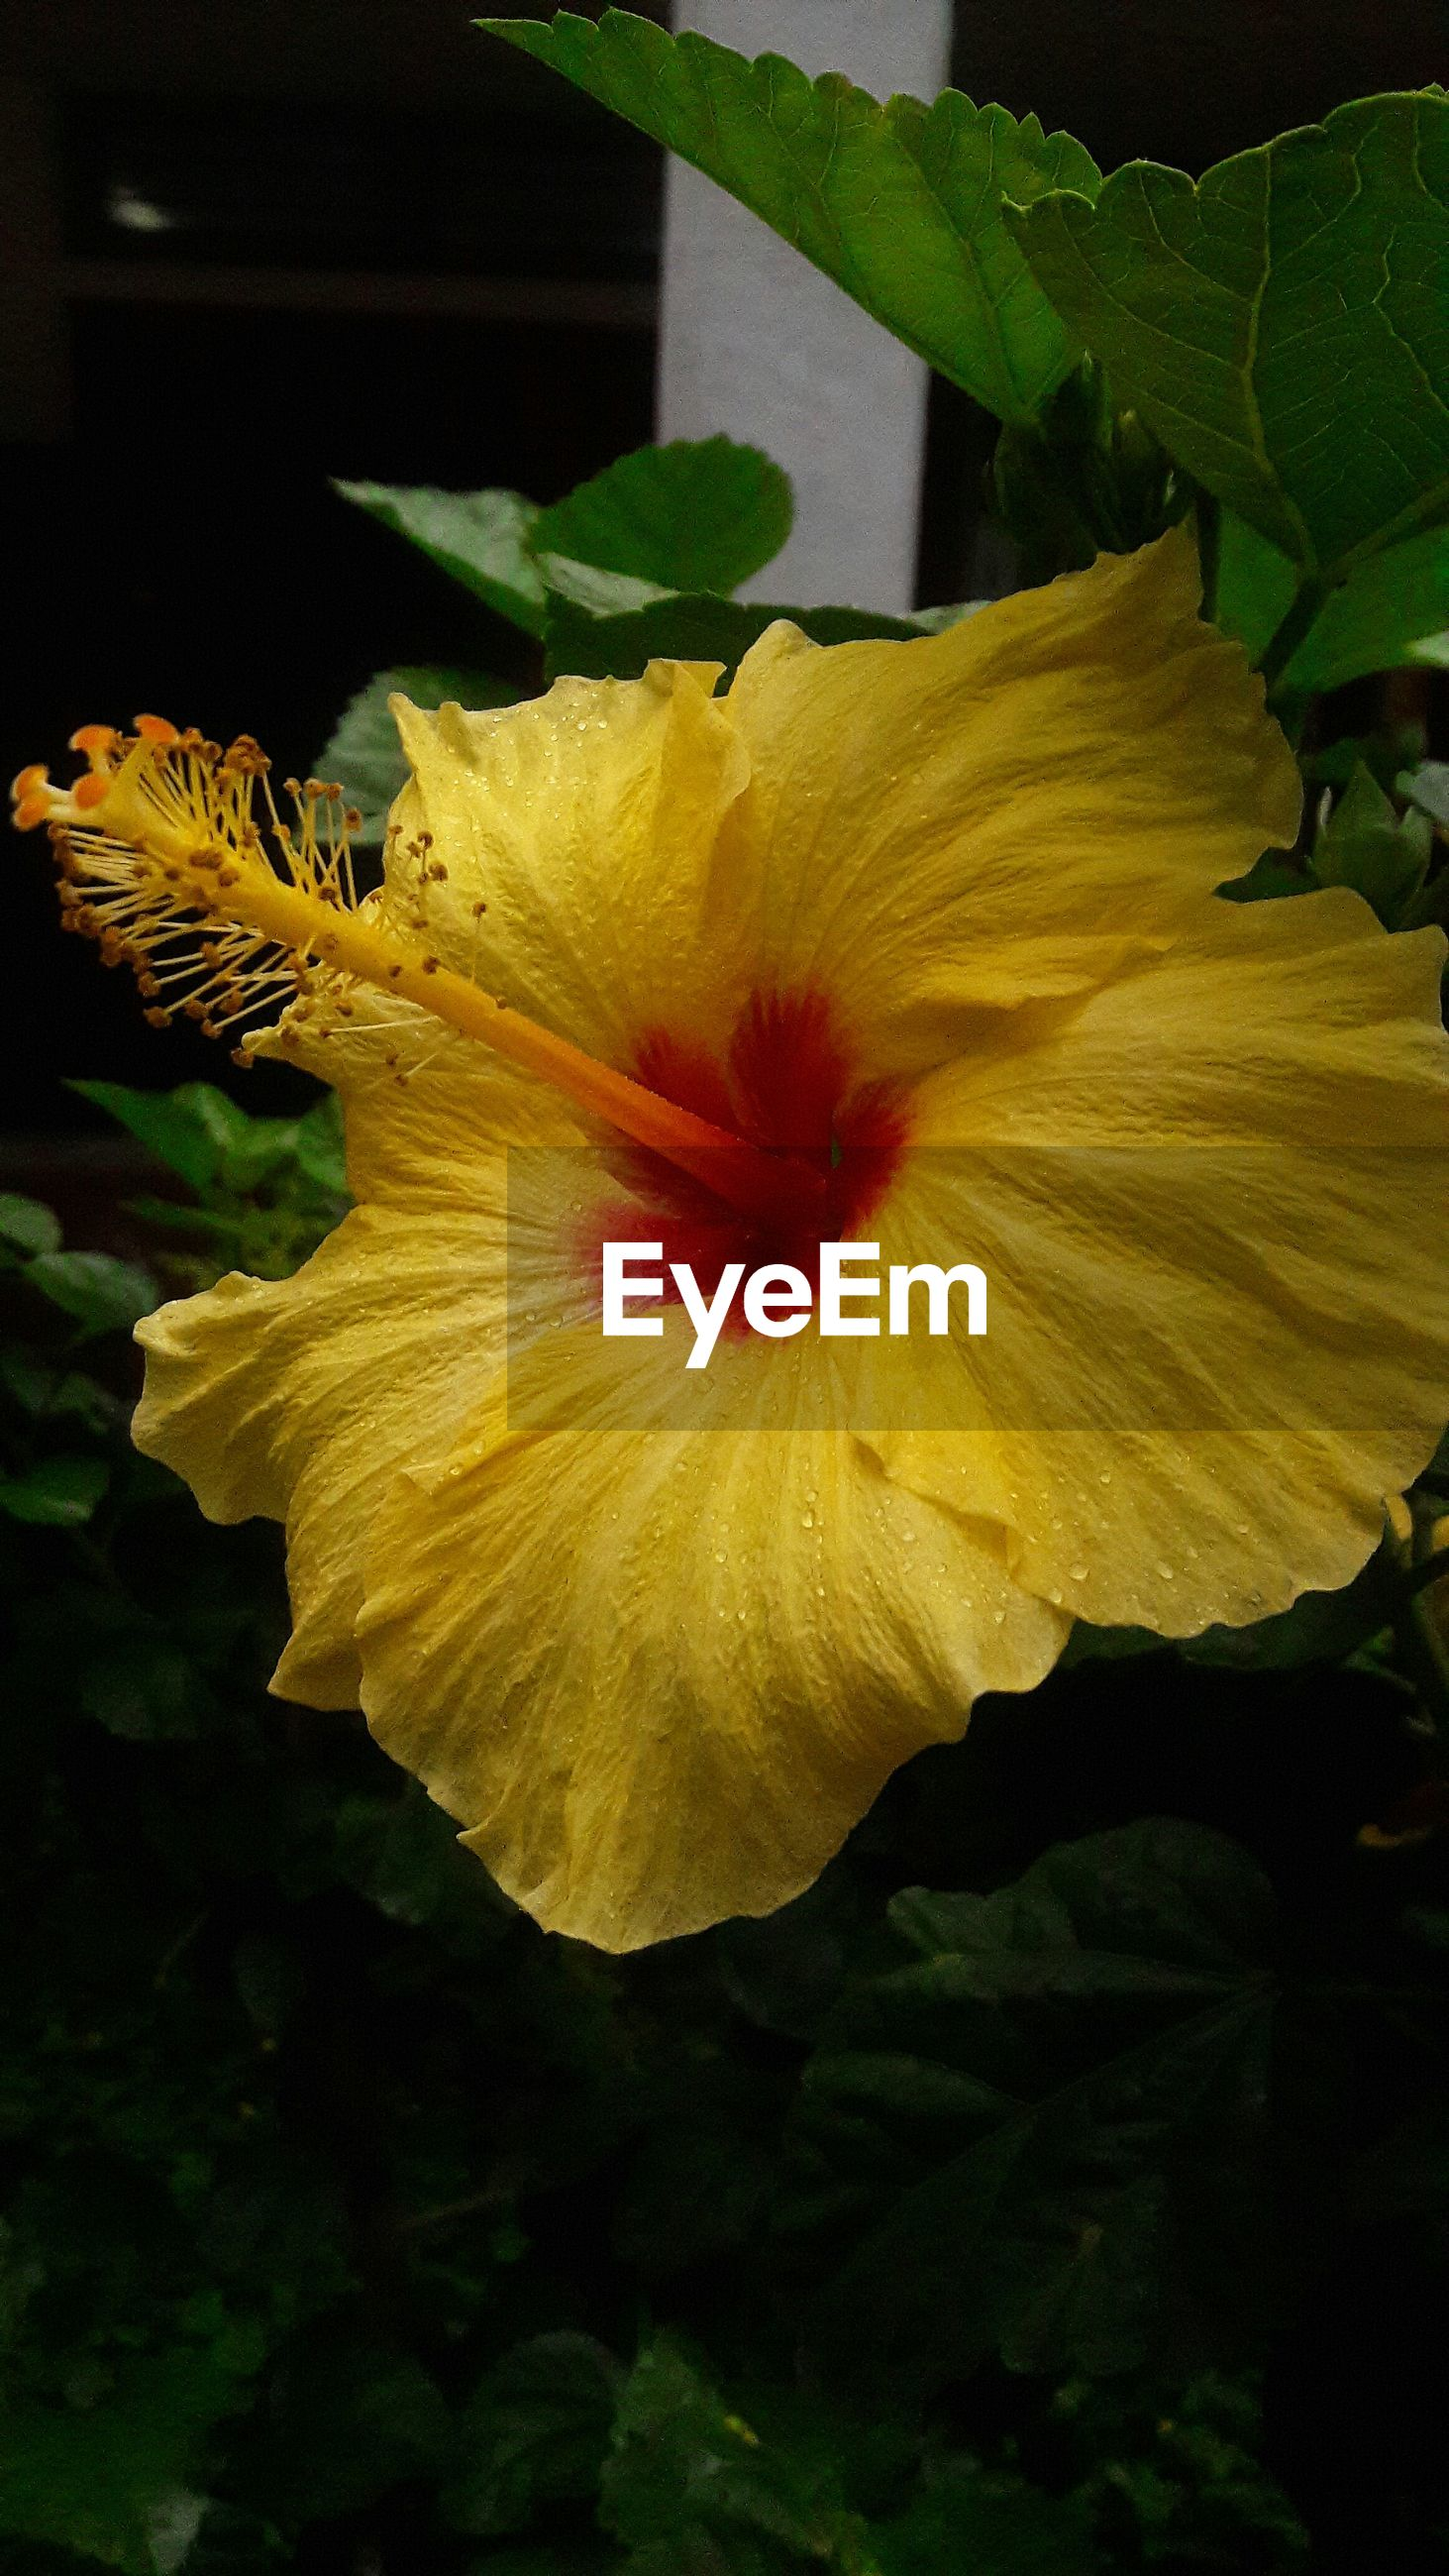 CLOSE-UP OF YELLOW HIBISCUS FLOWER BLOOMING